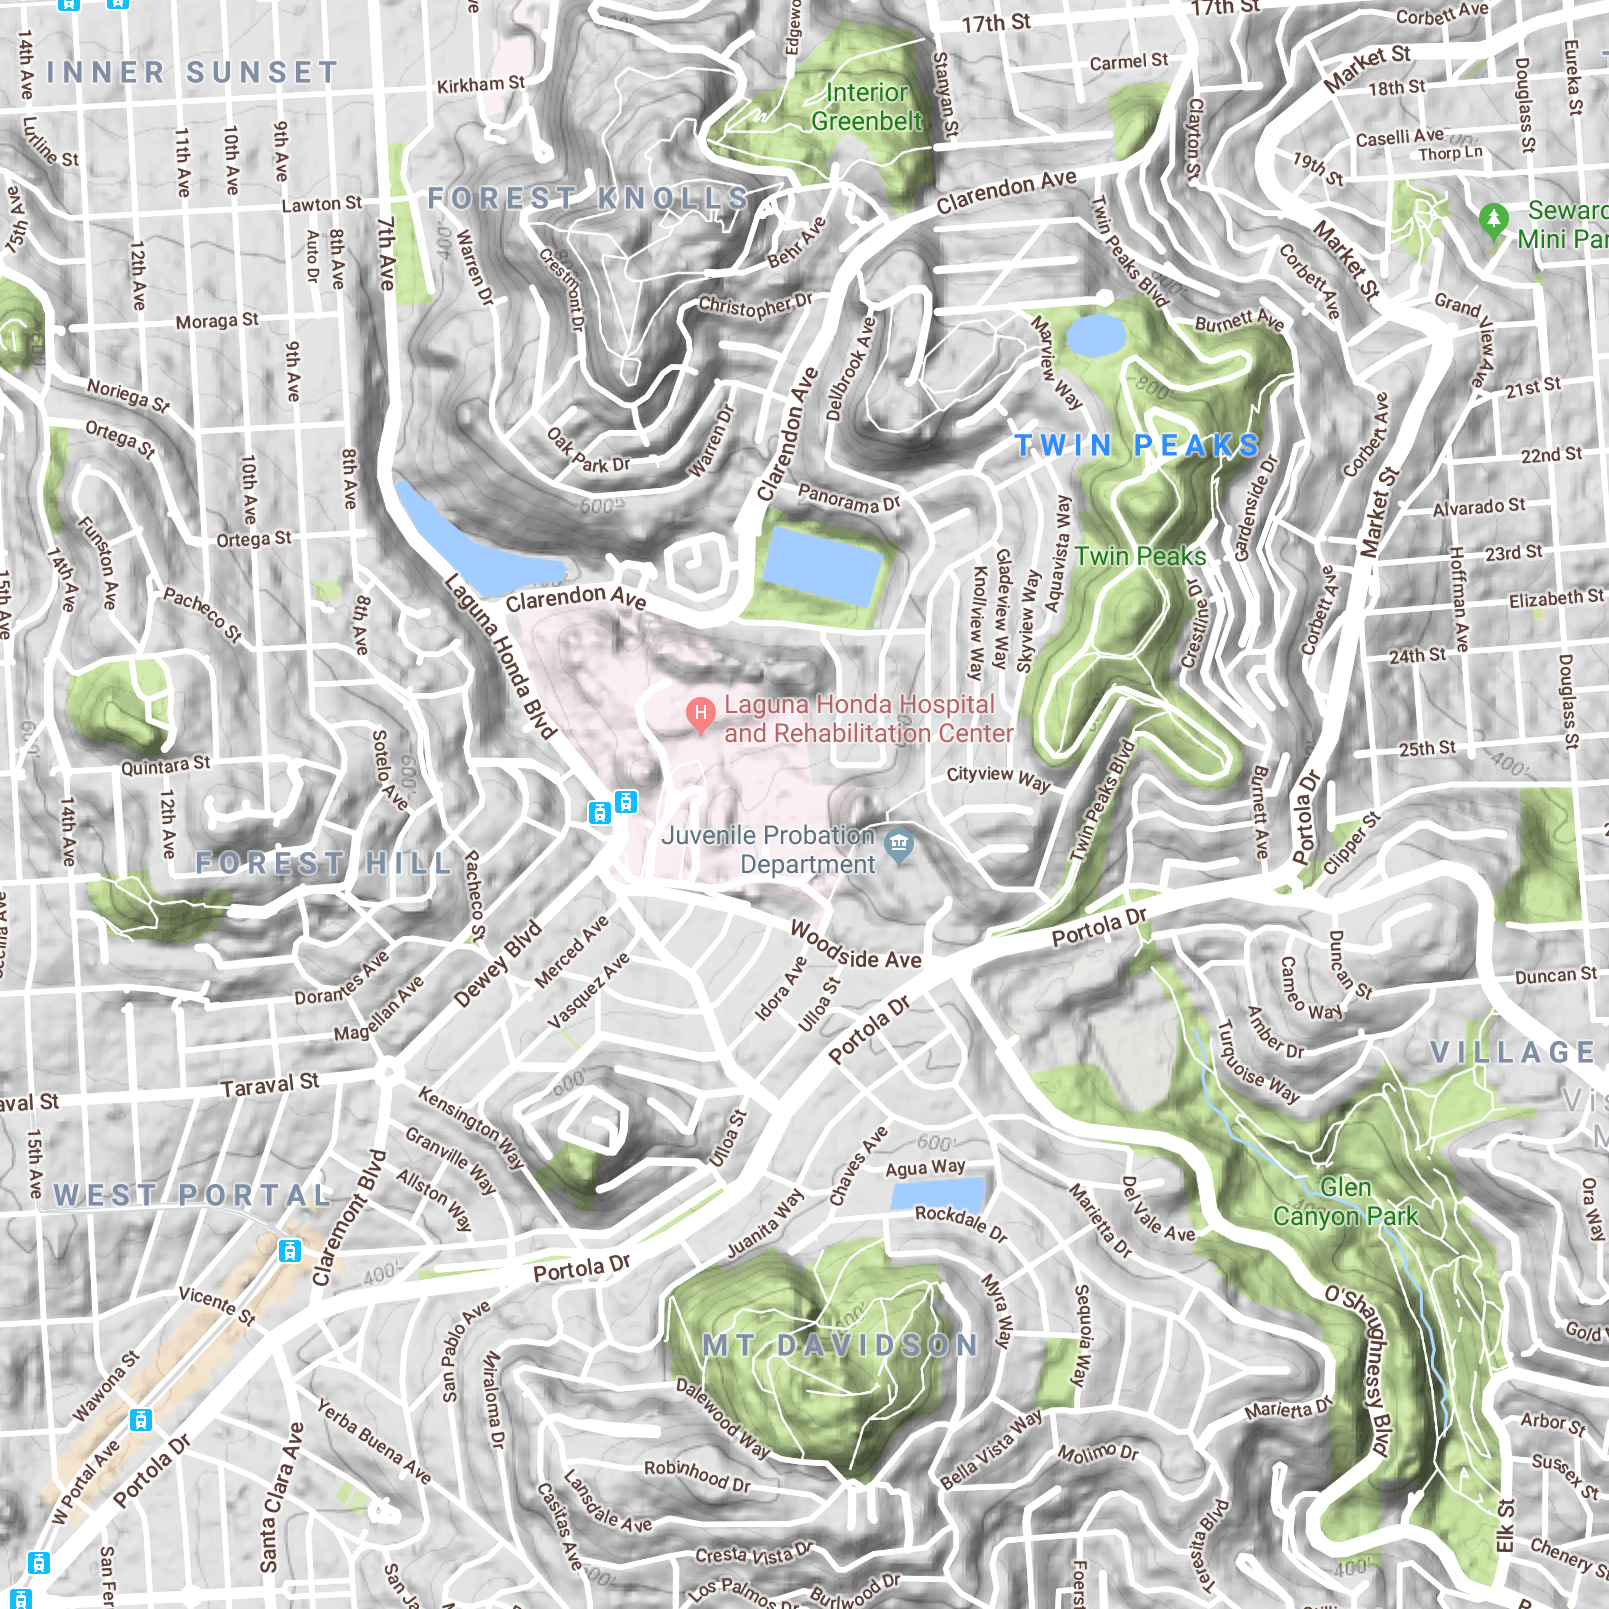 Good to know. (A topographical map of parts of San Francisco, courtesy of Google maps.)